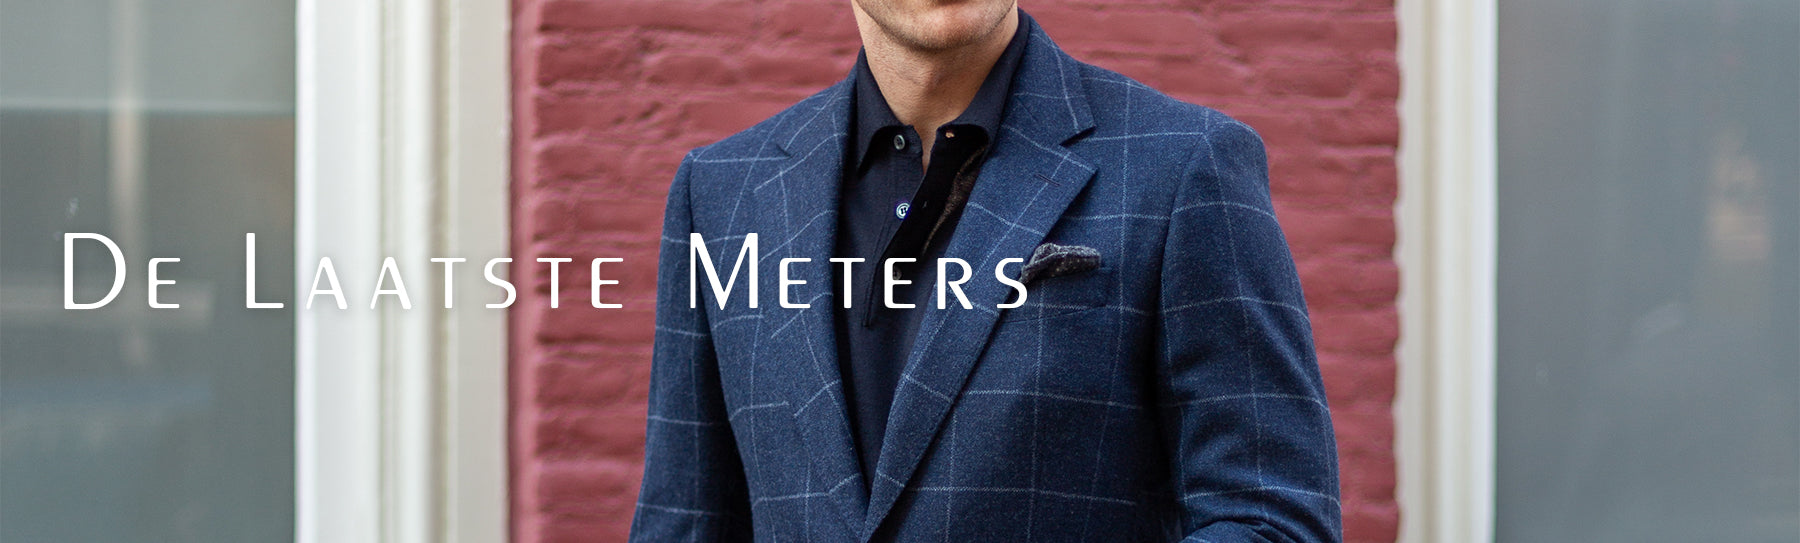 De Laatste Meters - NEW TAILOR